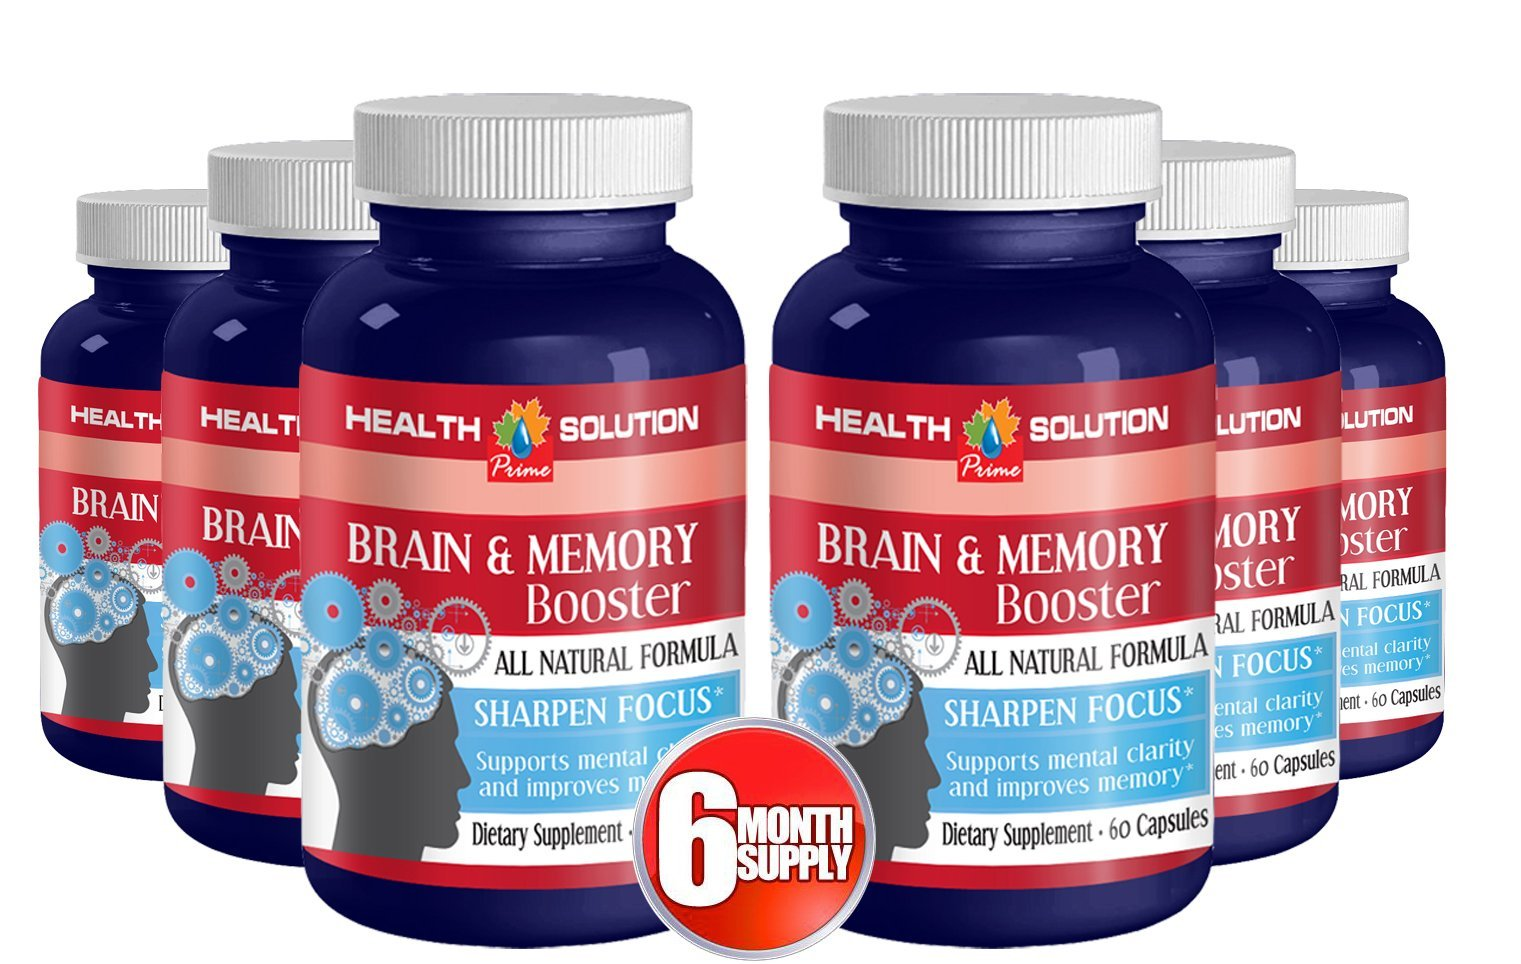 Saint john wort - BRAIN AND MEMORY BOOSTER - improve concentration (6 bottles) by Health Solution Prime